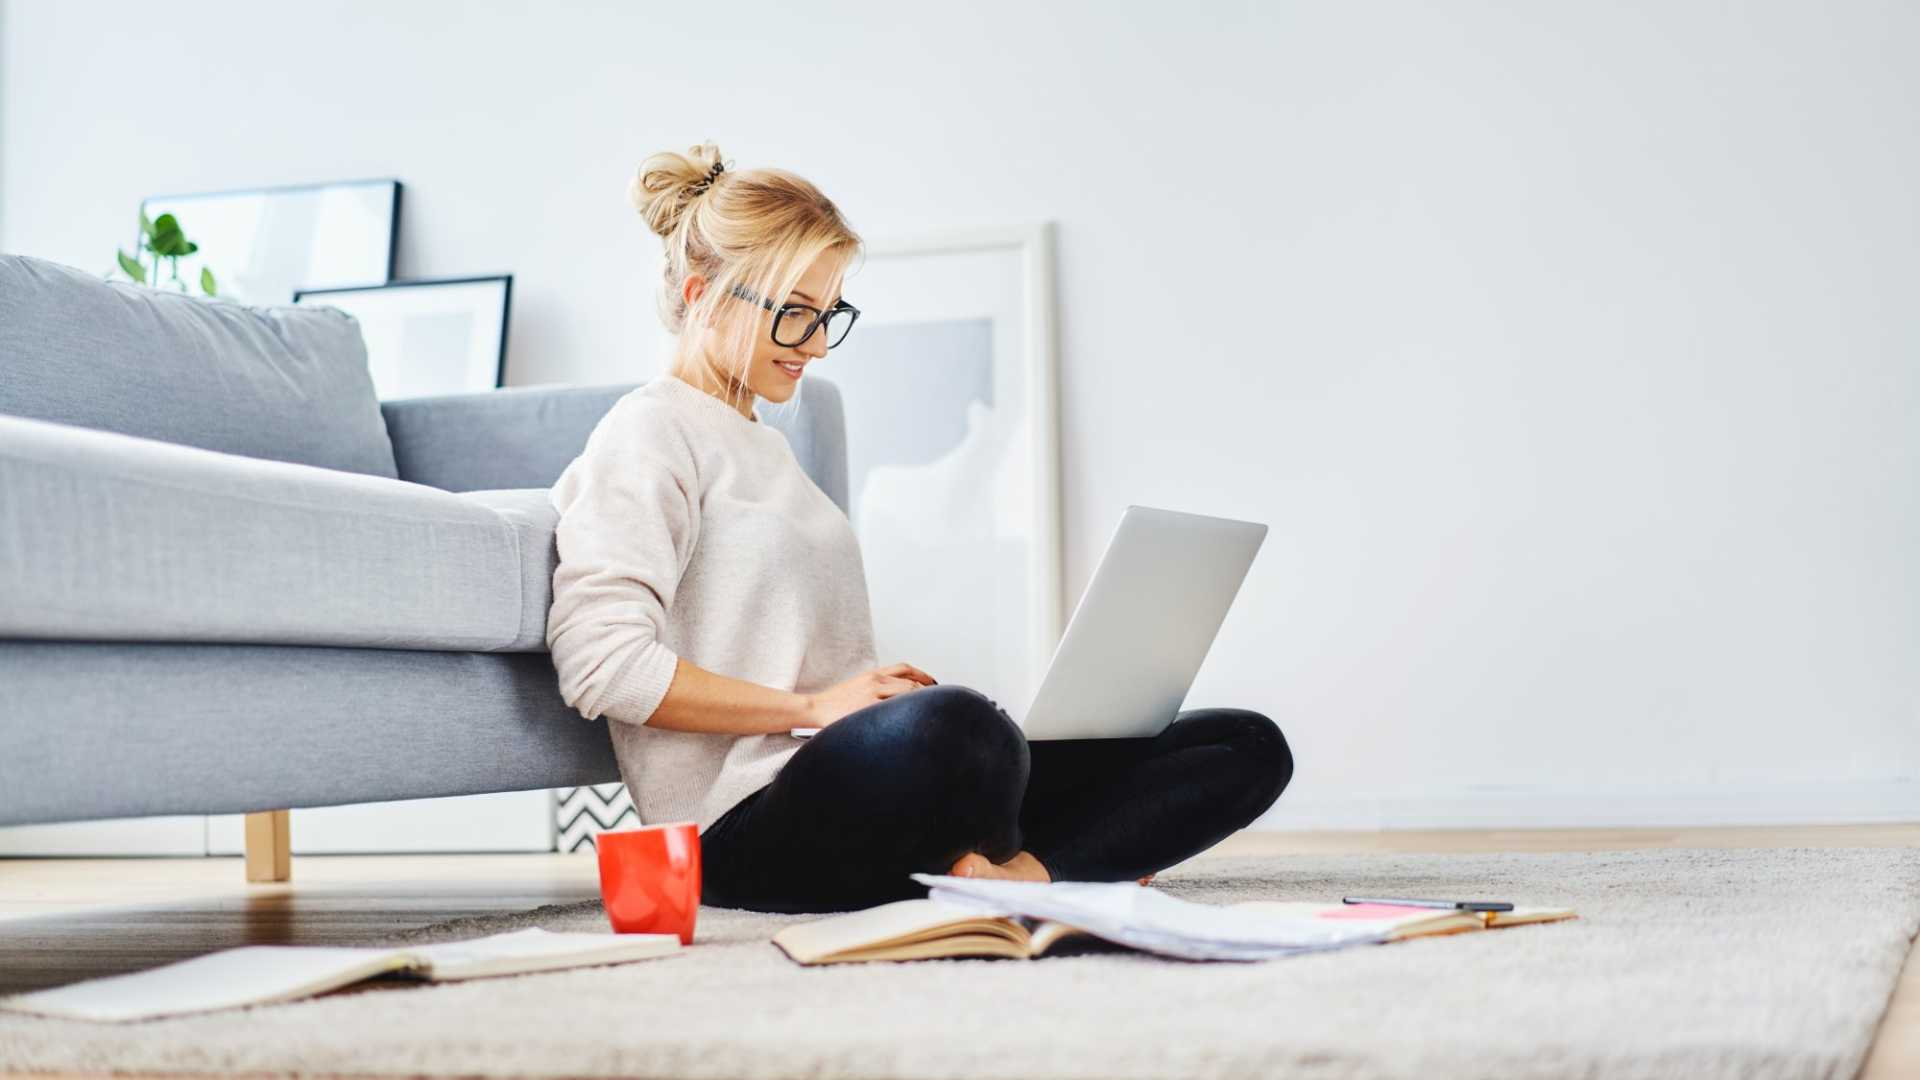 3 Great Ways to Motivate Employees in the New 'Stay at Home' Economy